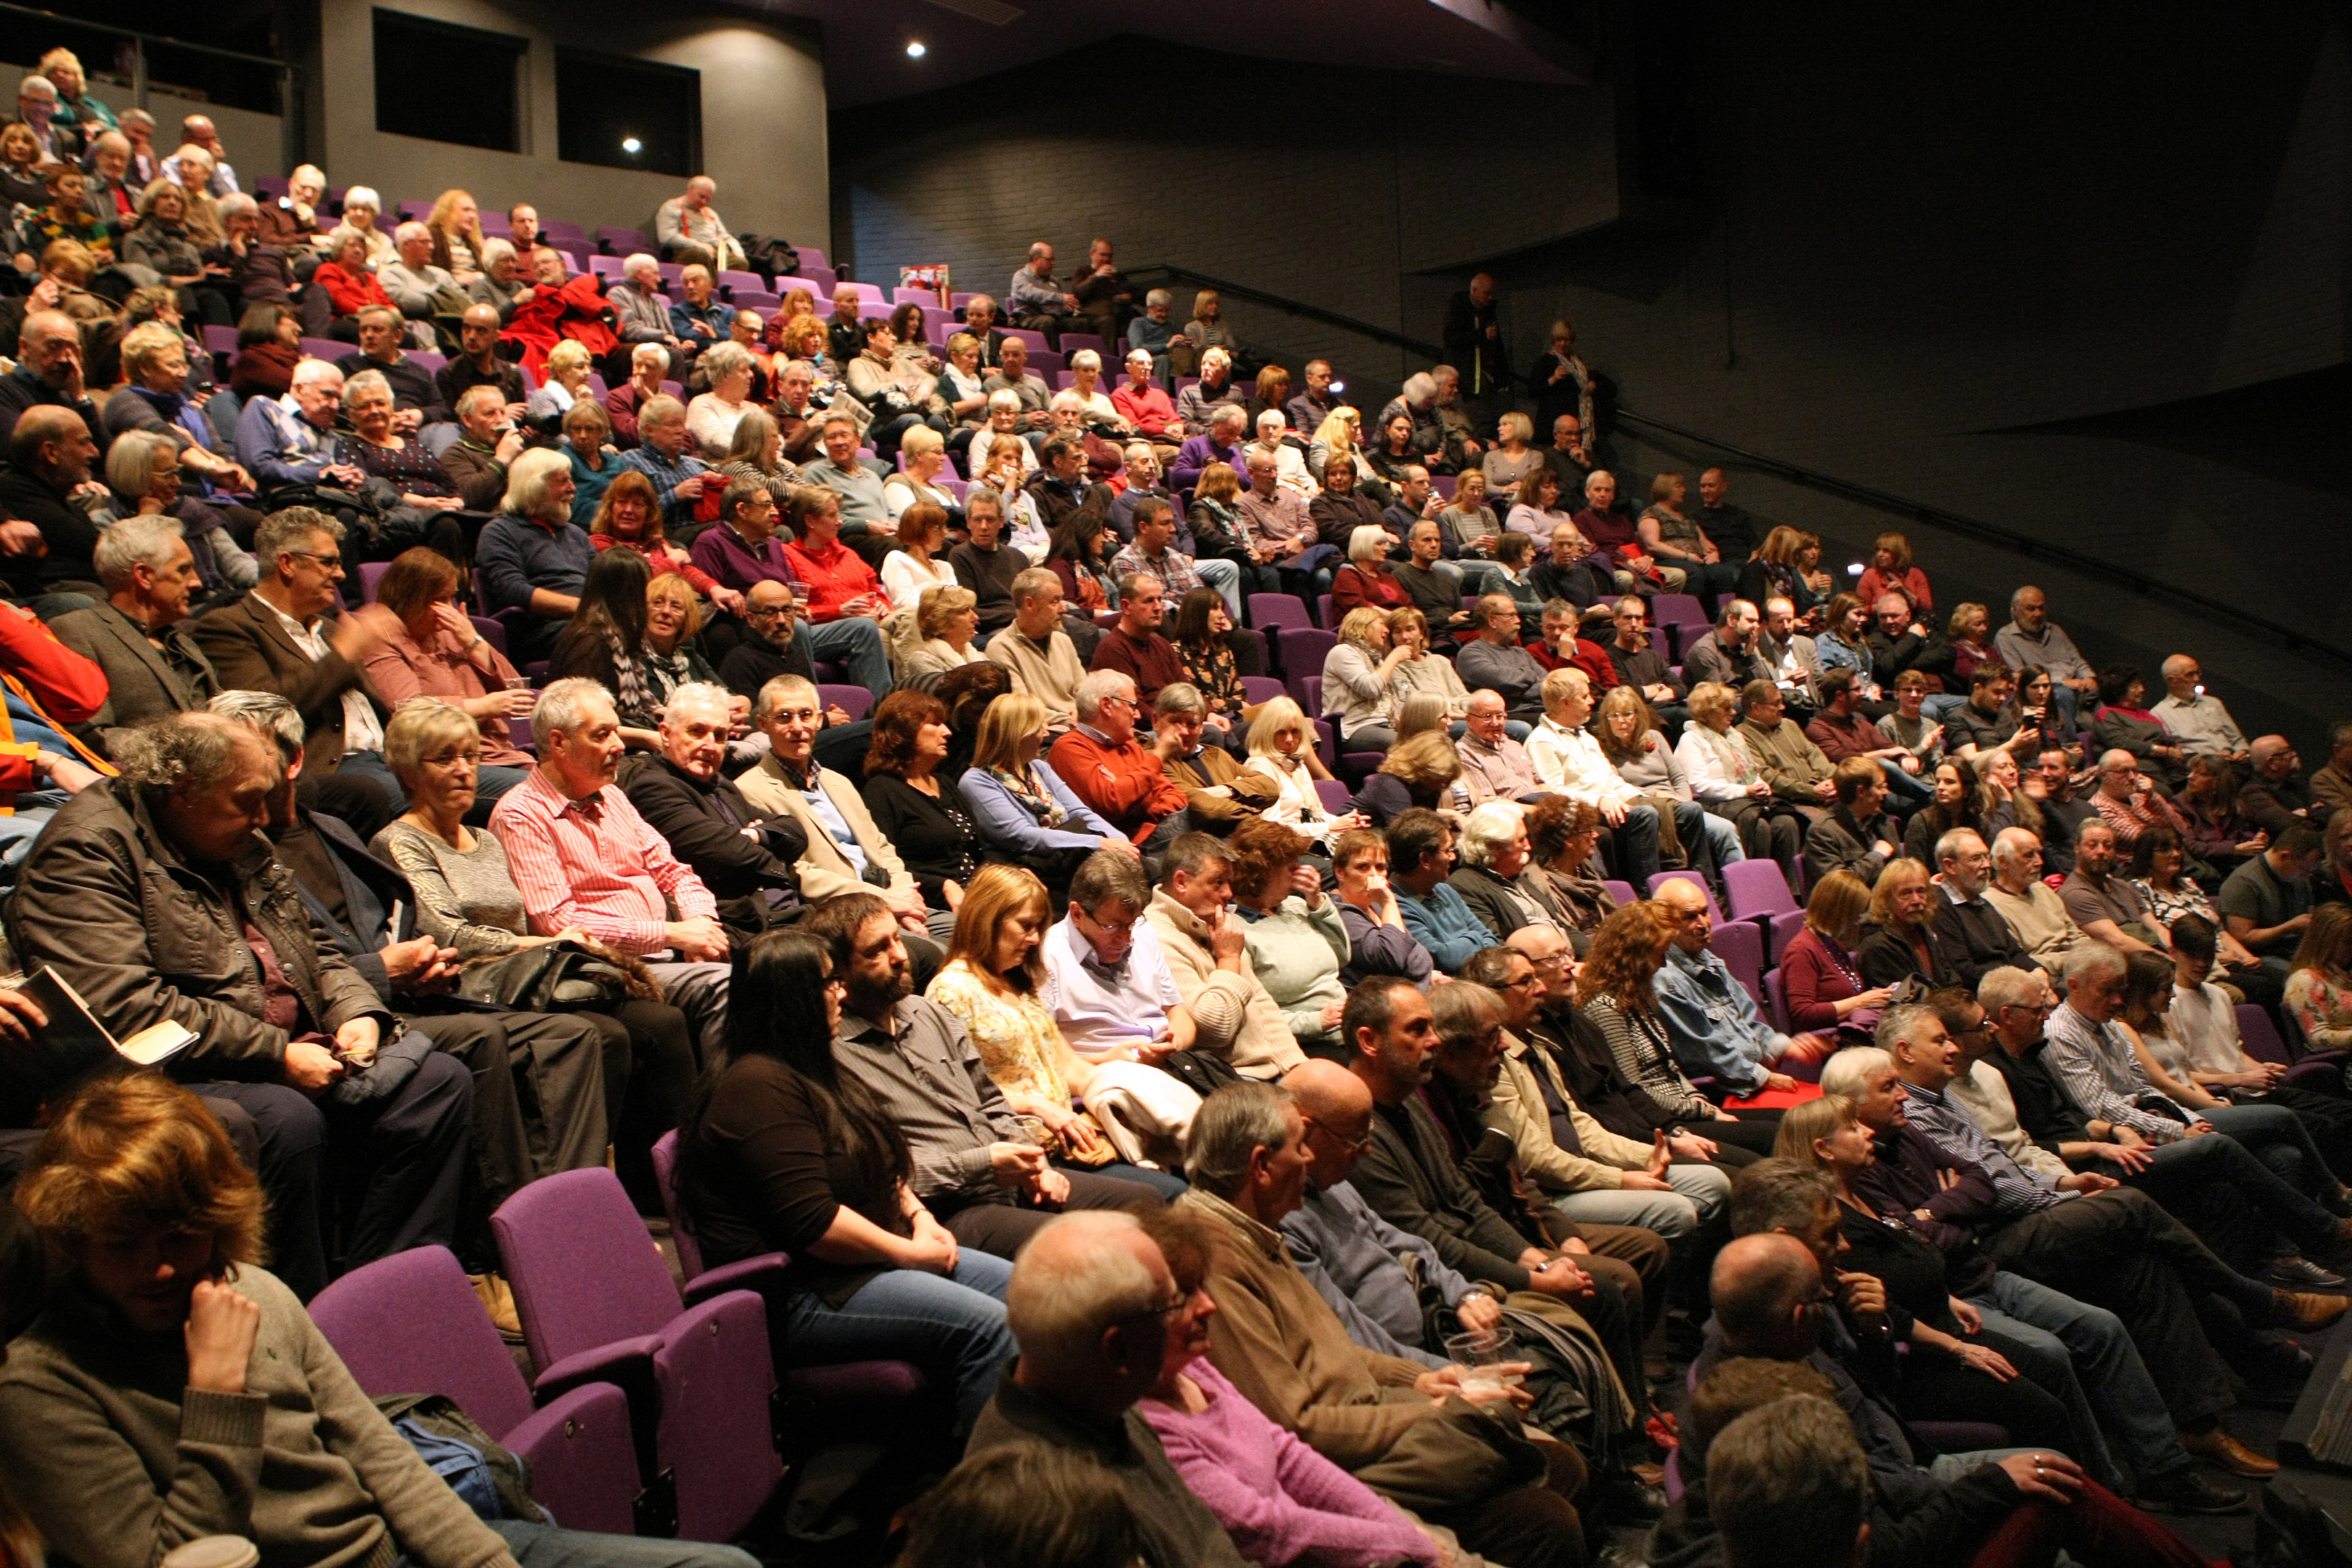 The 2015 festival drew a large crowd.